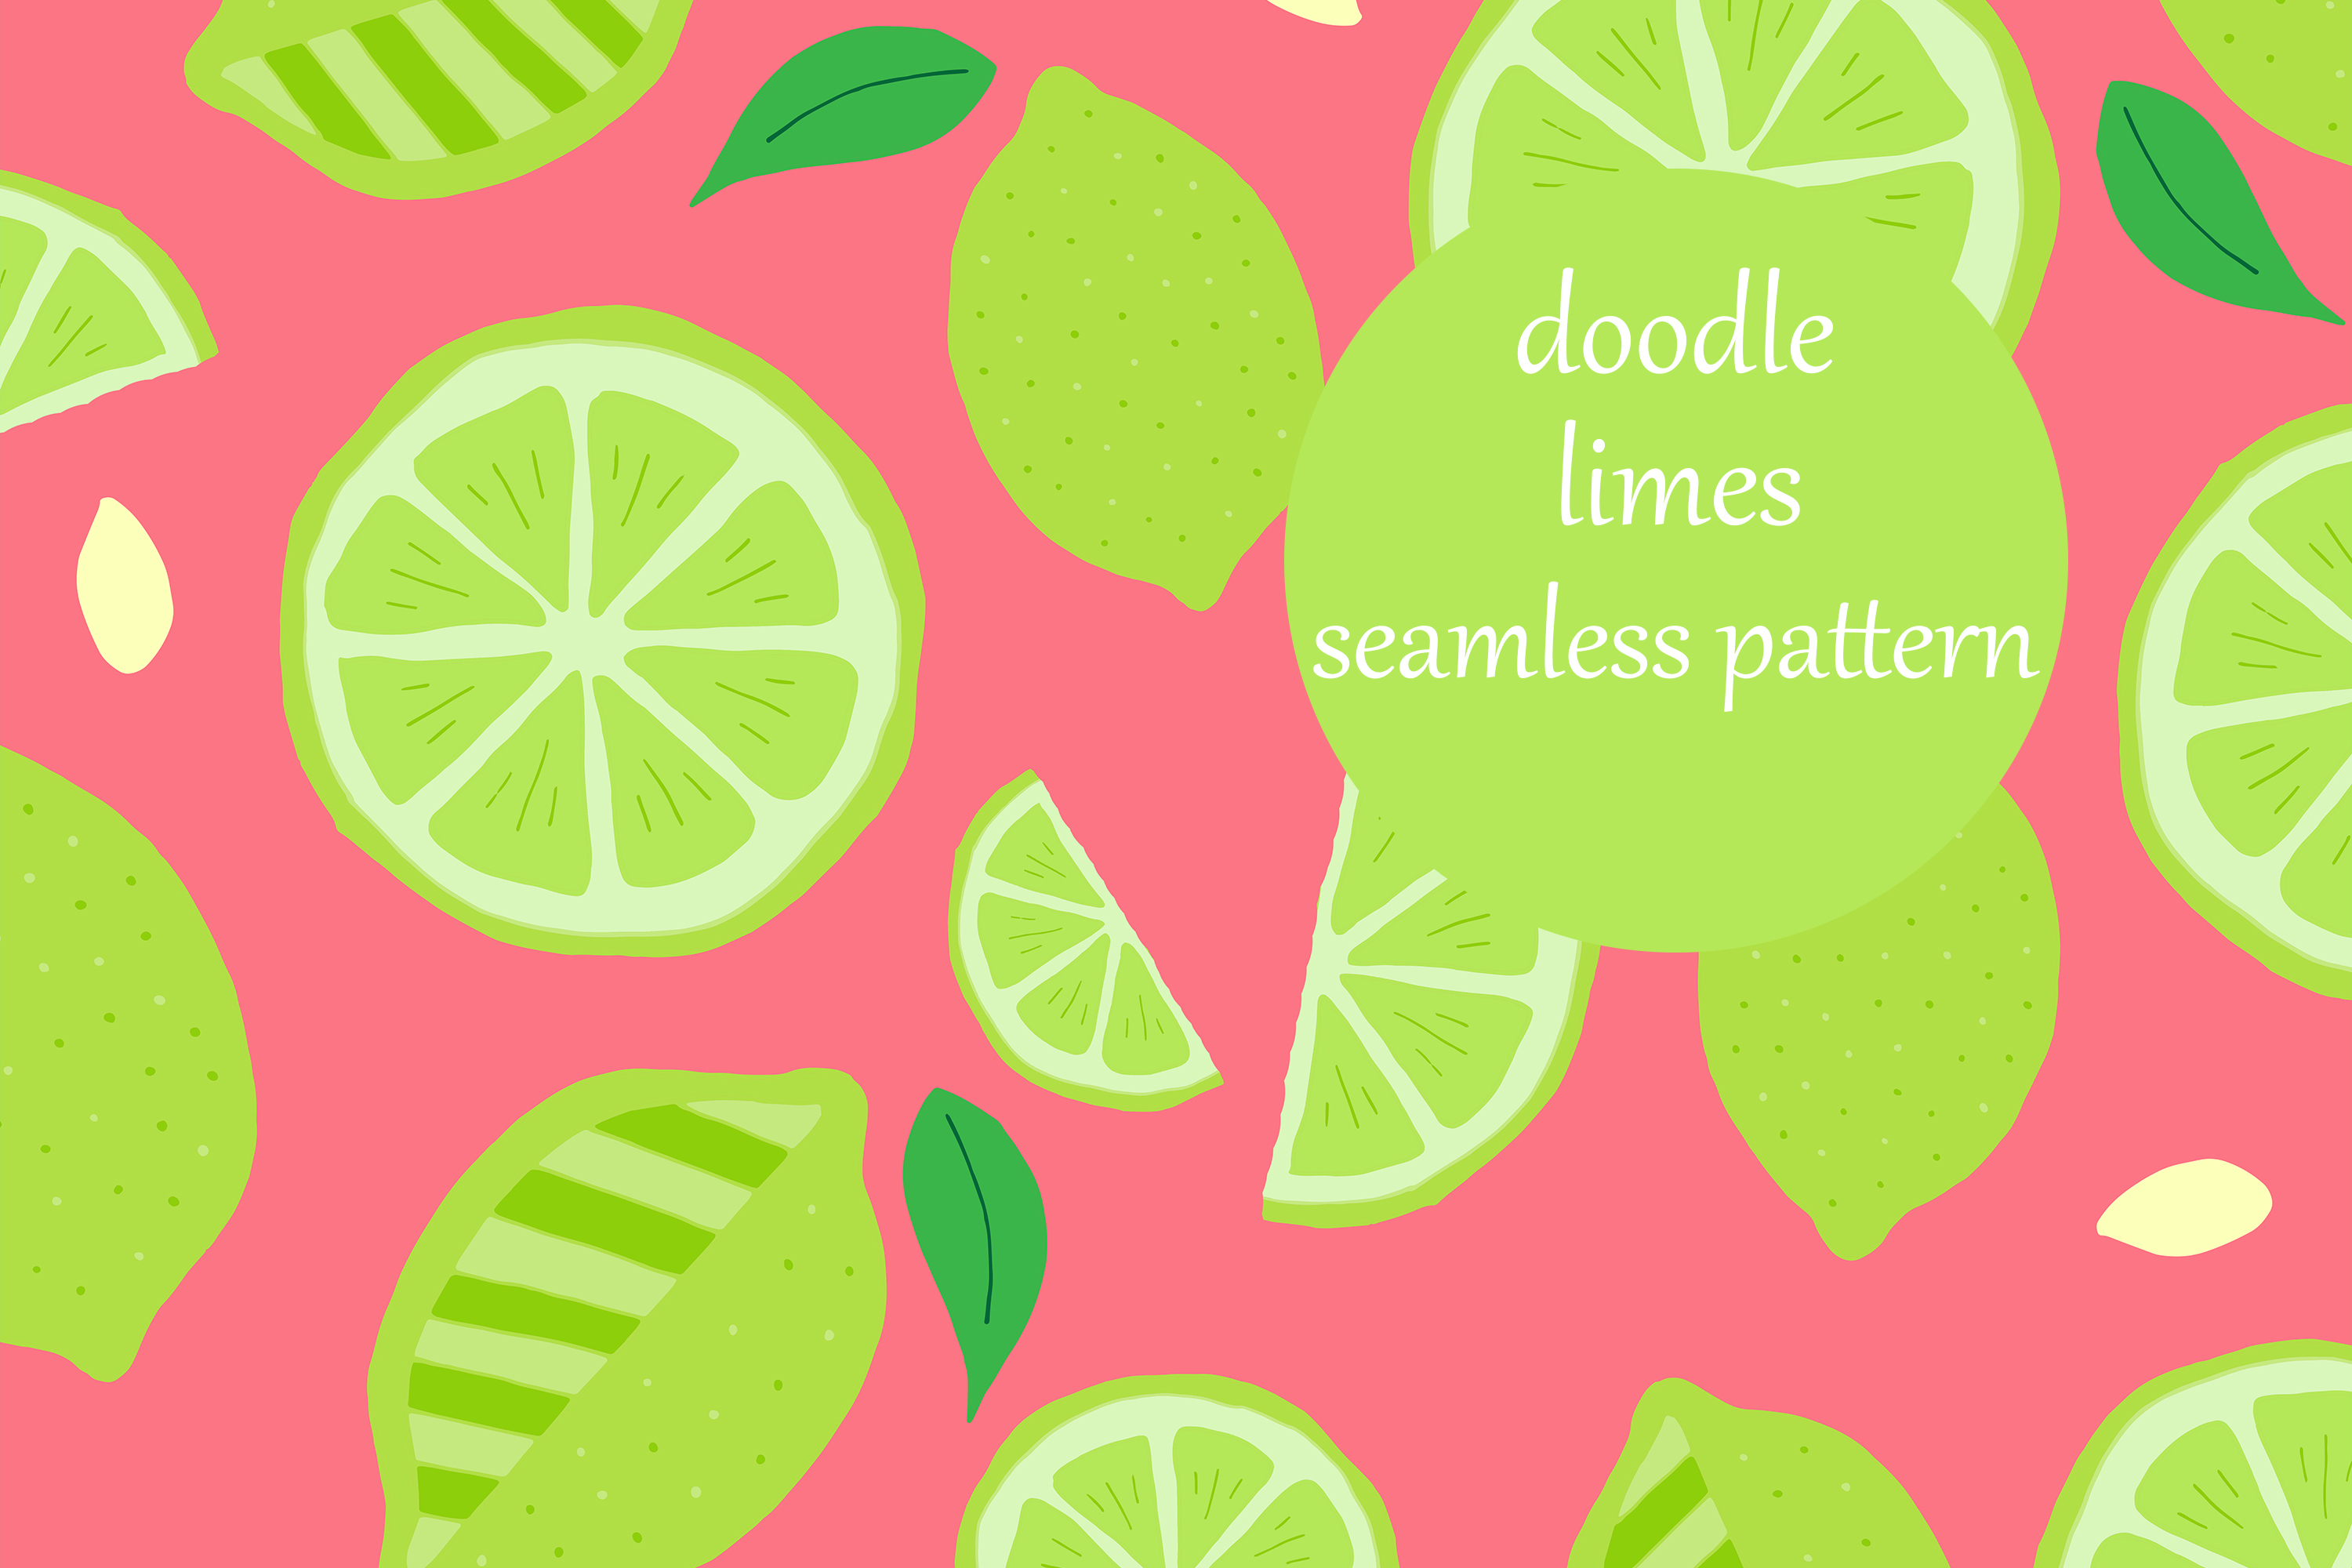 Download Free Fun Scattered Doodle Limes Pattern Graphic By Brightgrayart for Cricut Explore, Silhouette and other cutting machines.